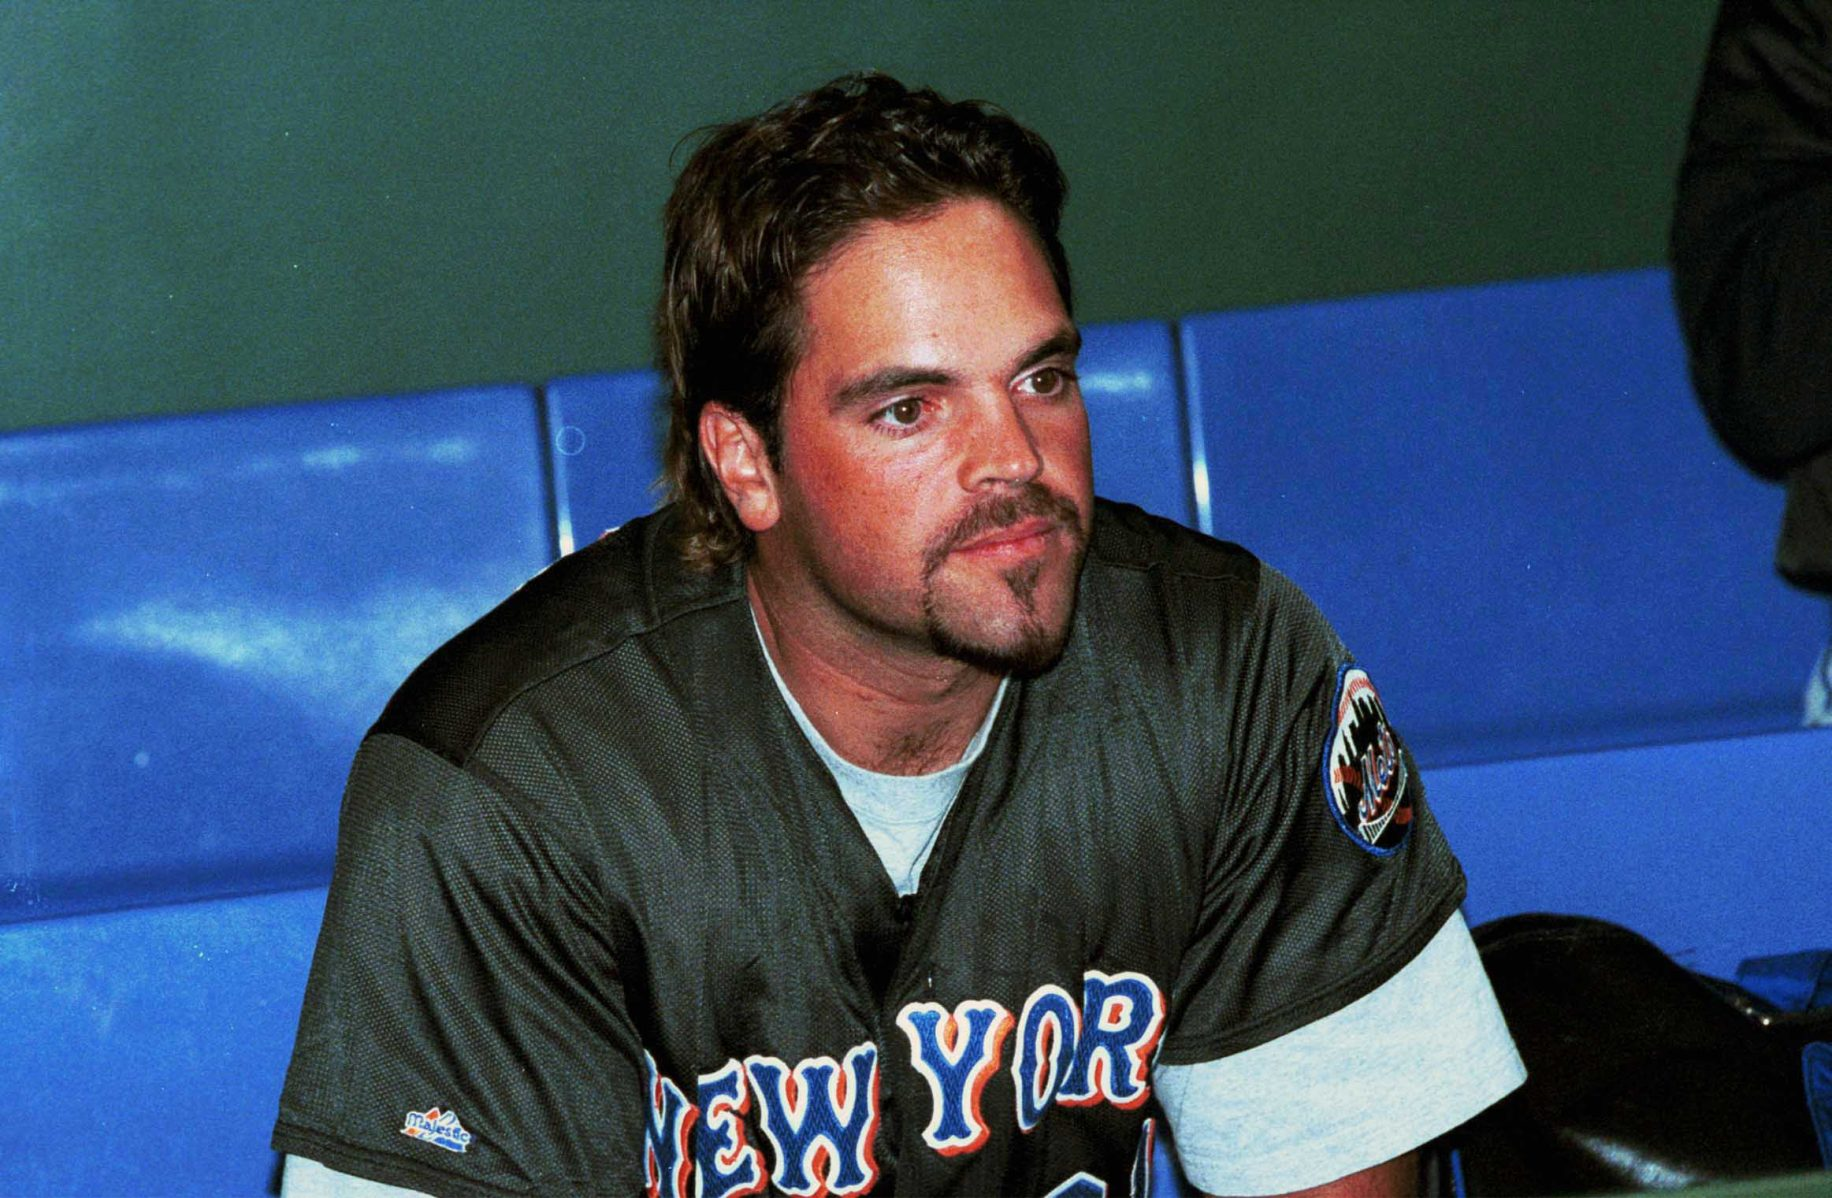 Mike Piazza, New York Mets, MLB